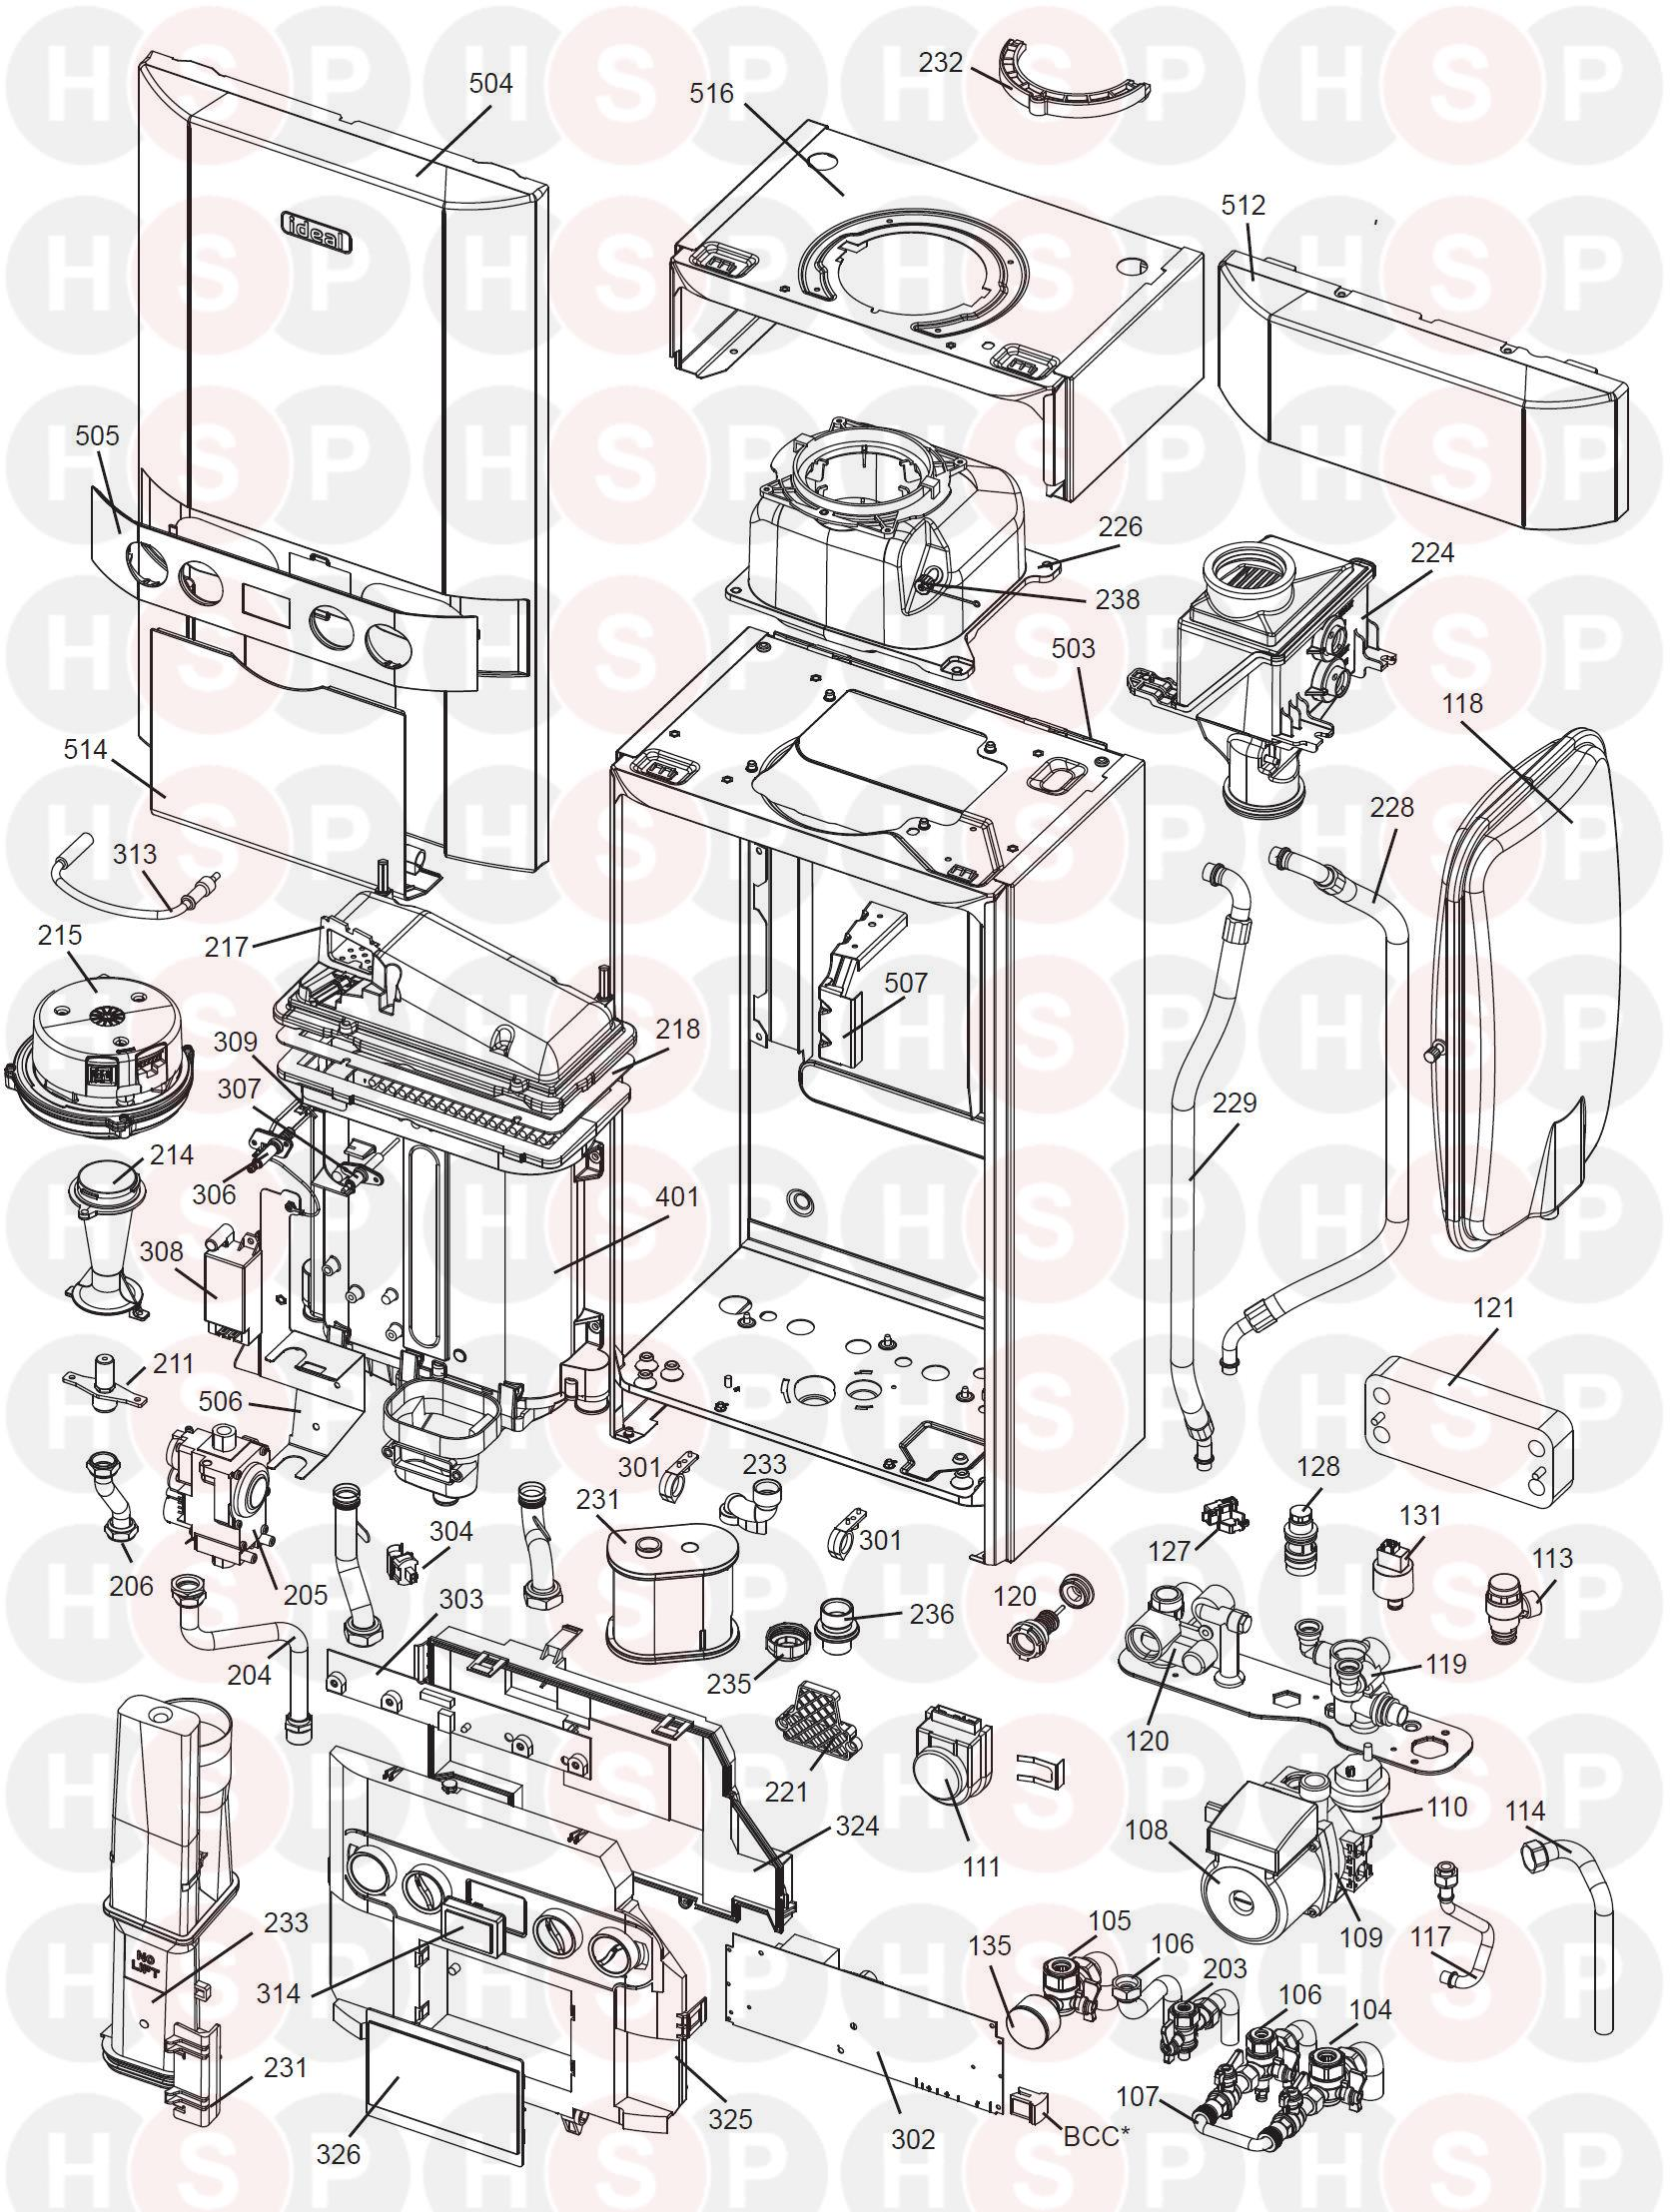 BOILER EXPLODED VIEW diagram for Ideal LOGIC CODE COMBI 26